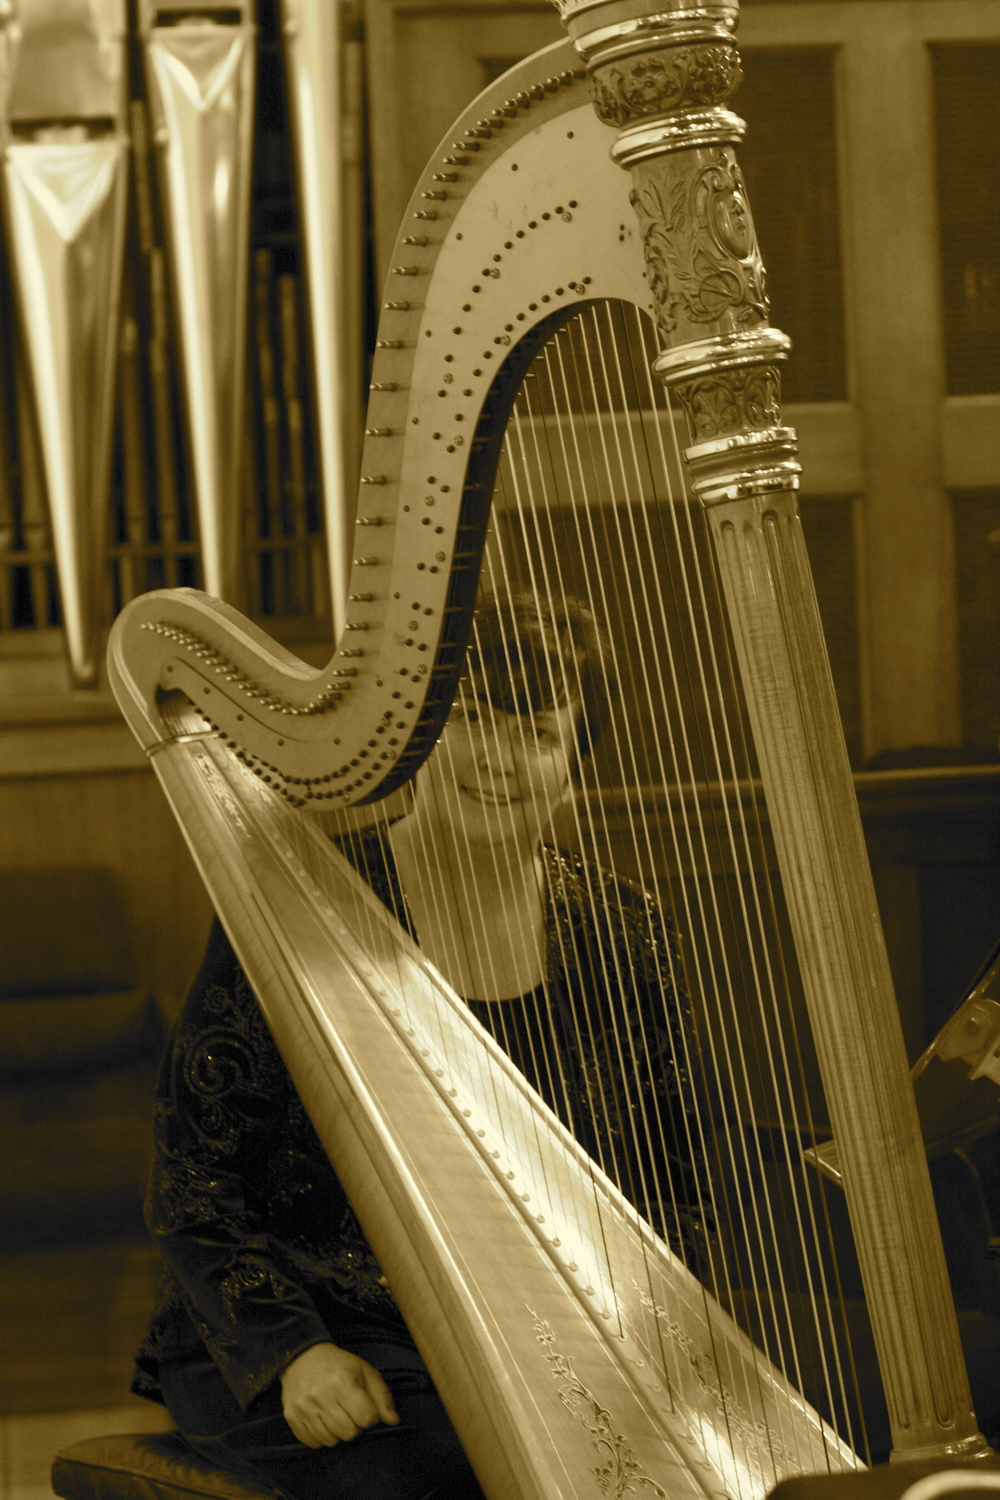 harp and organ duo - one of my favorites!